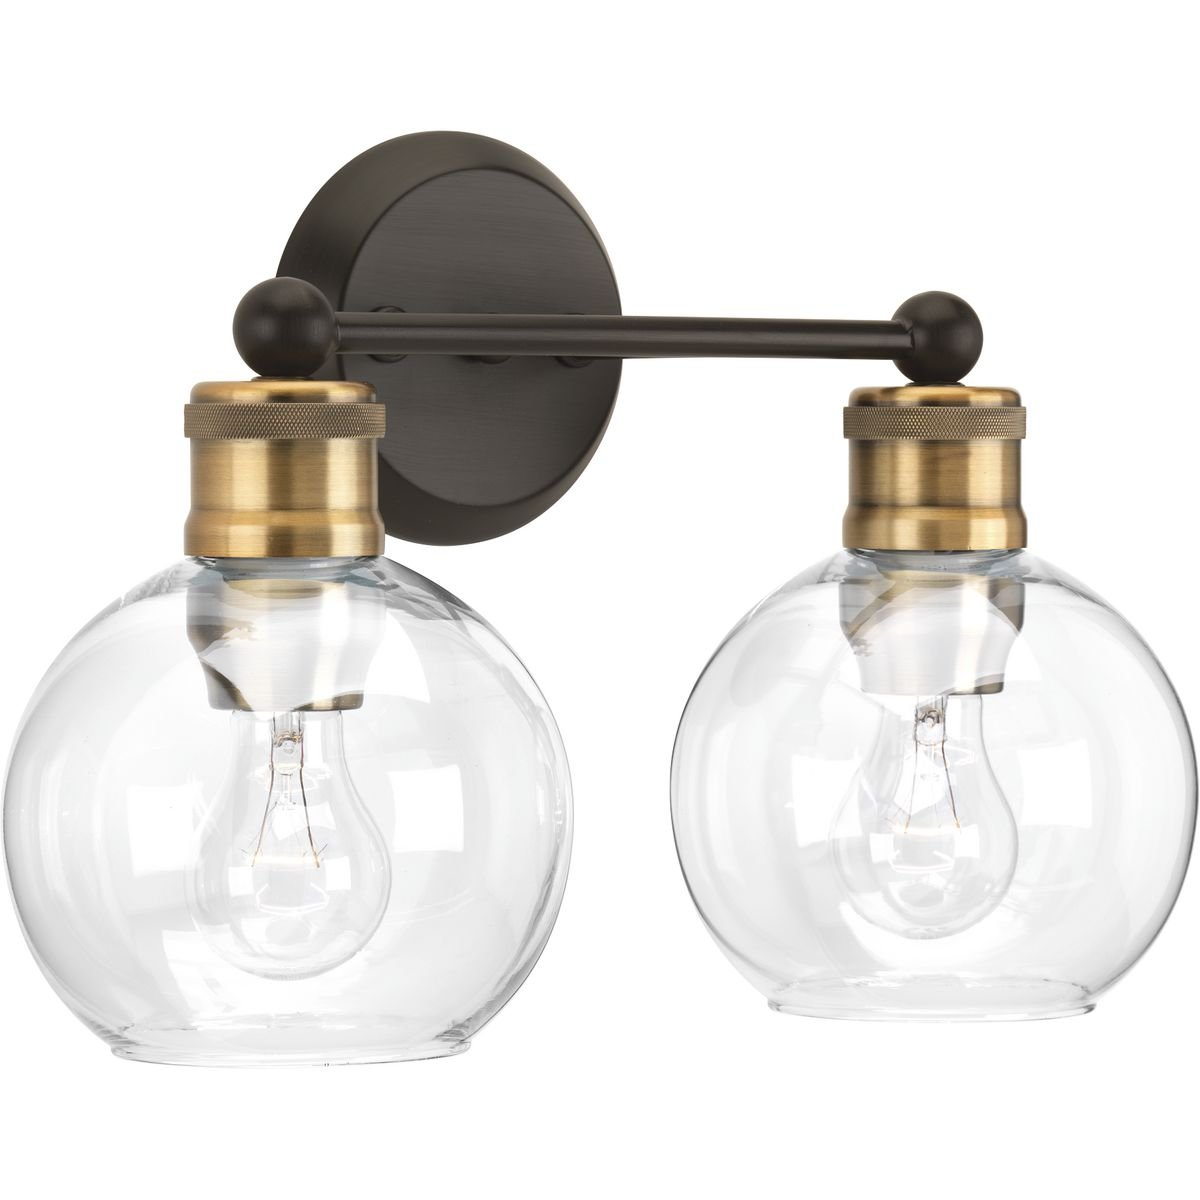 Progress Lighting P300050-020 Hansford Two-Light Bath and Vanity, Antique Bronze by Progress Lighting